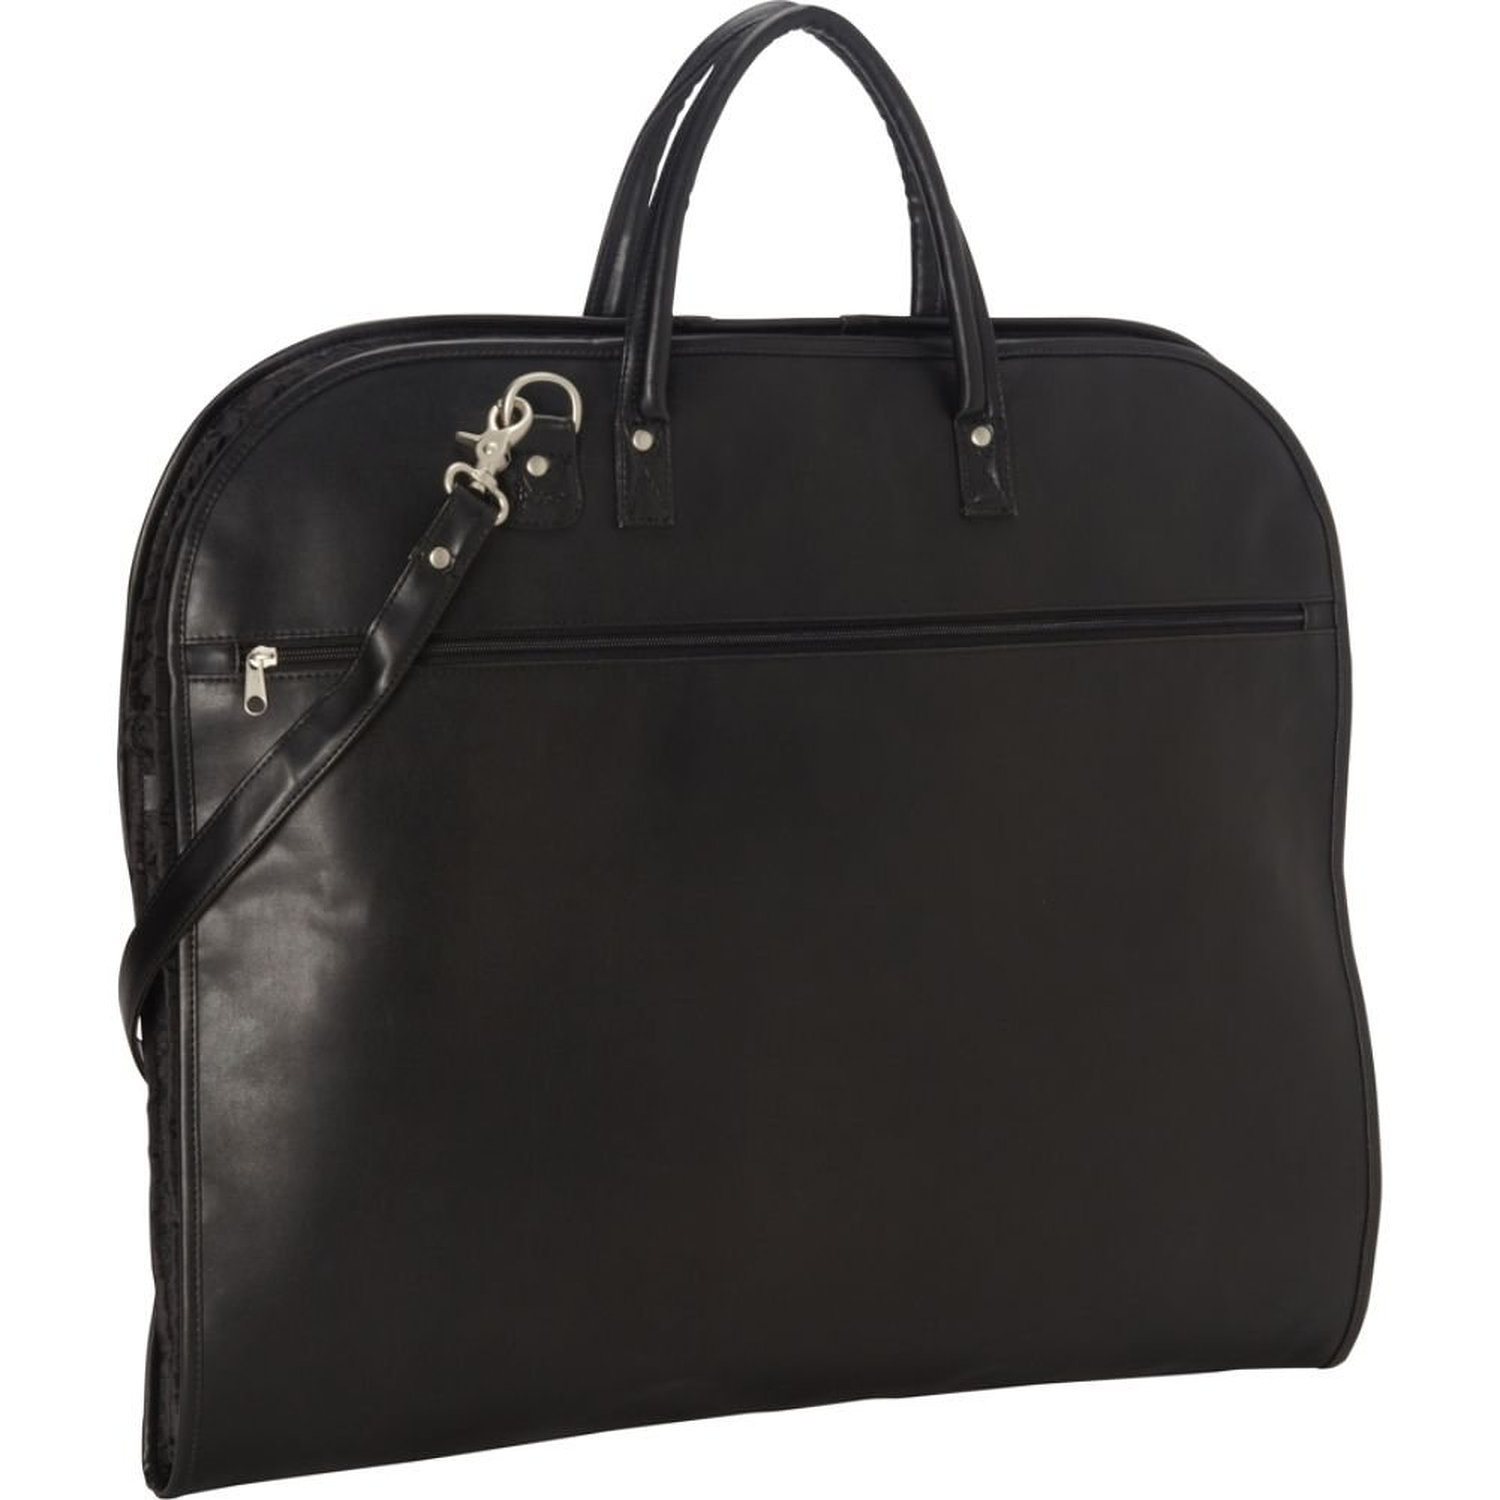 Royce Leather Garment Bag Suitcase in Leather, Black